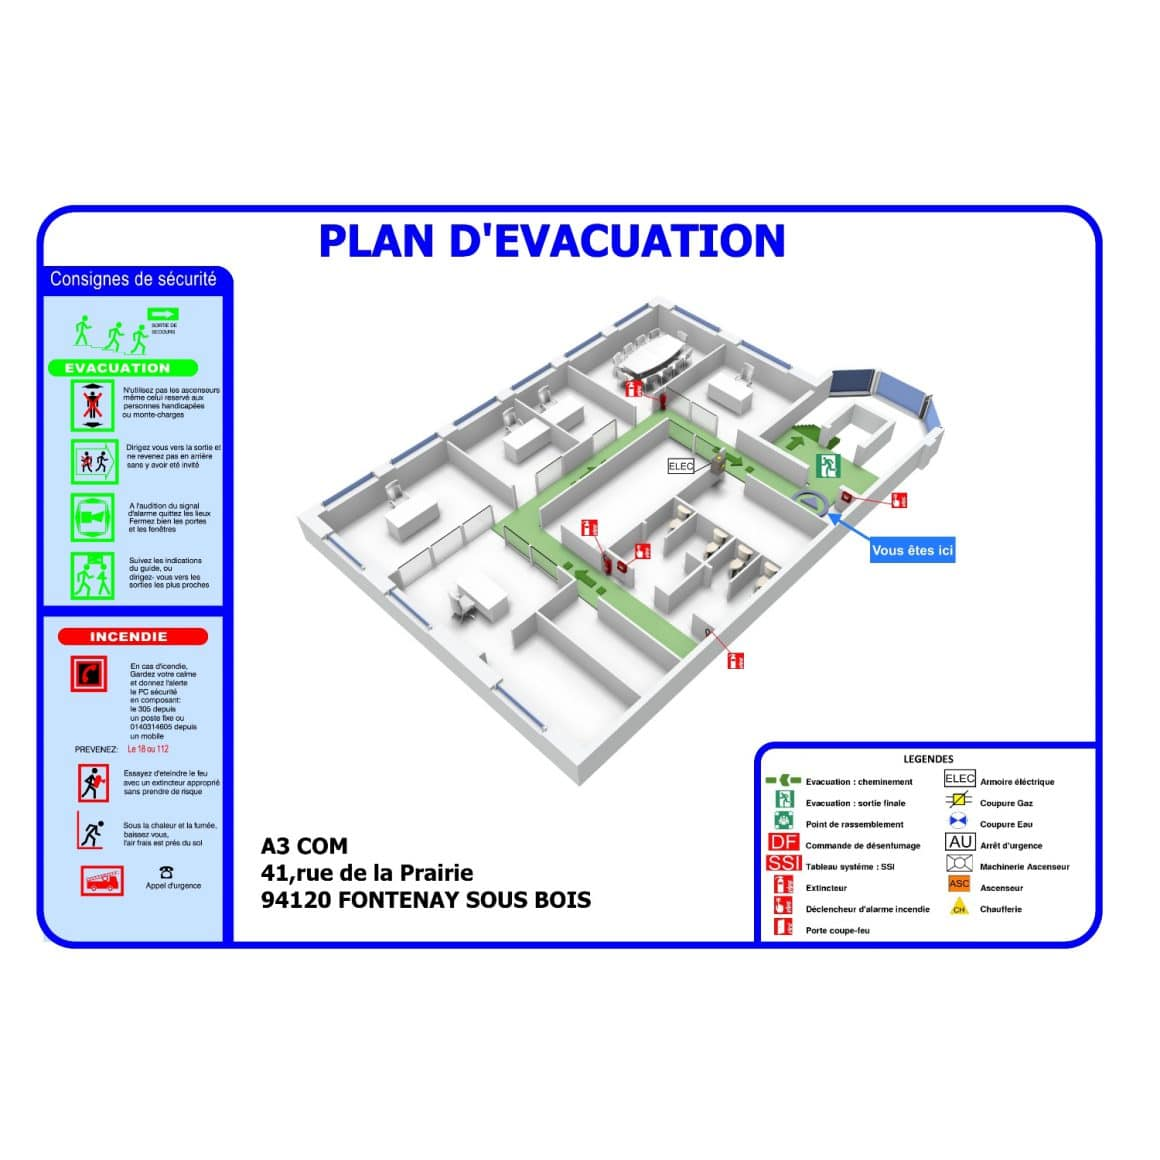 plan evacuation a3 com service plan securite 3d